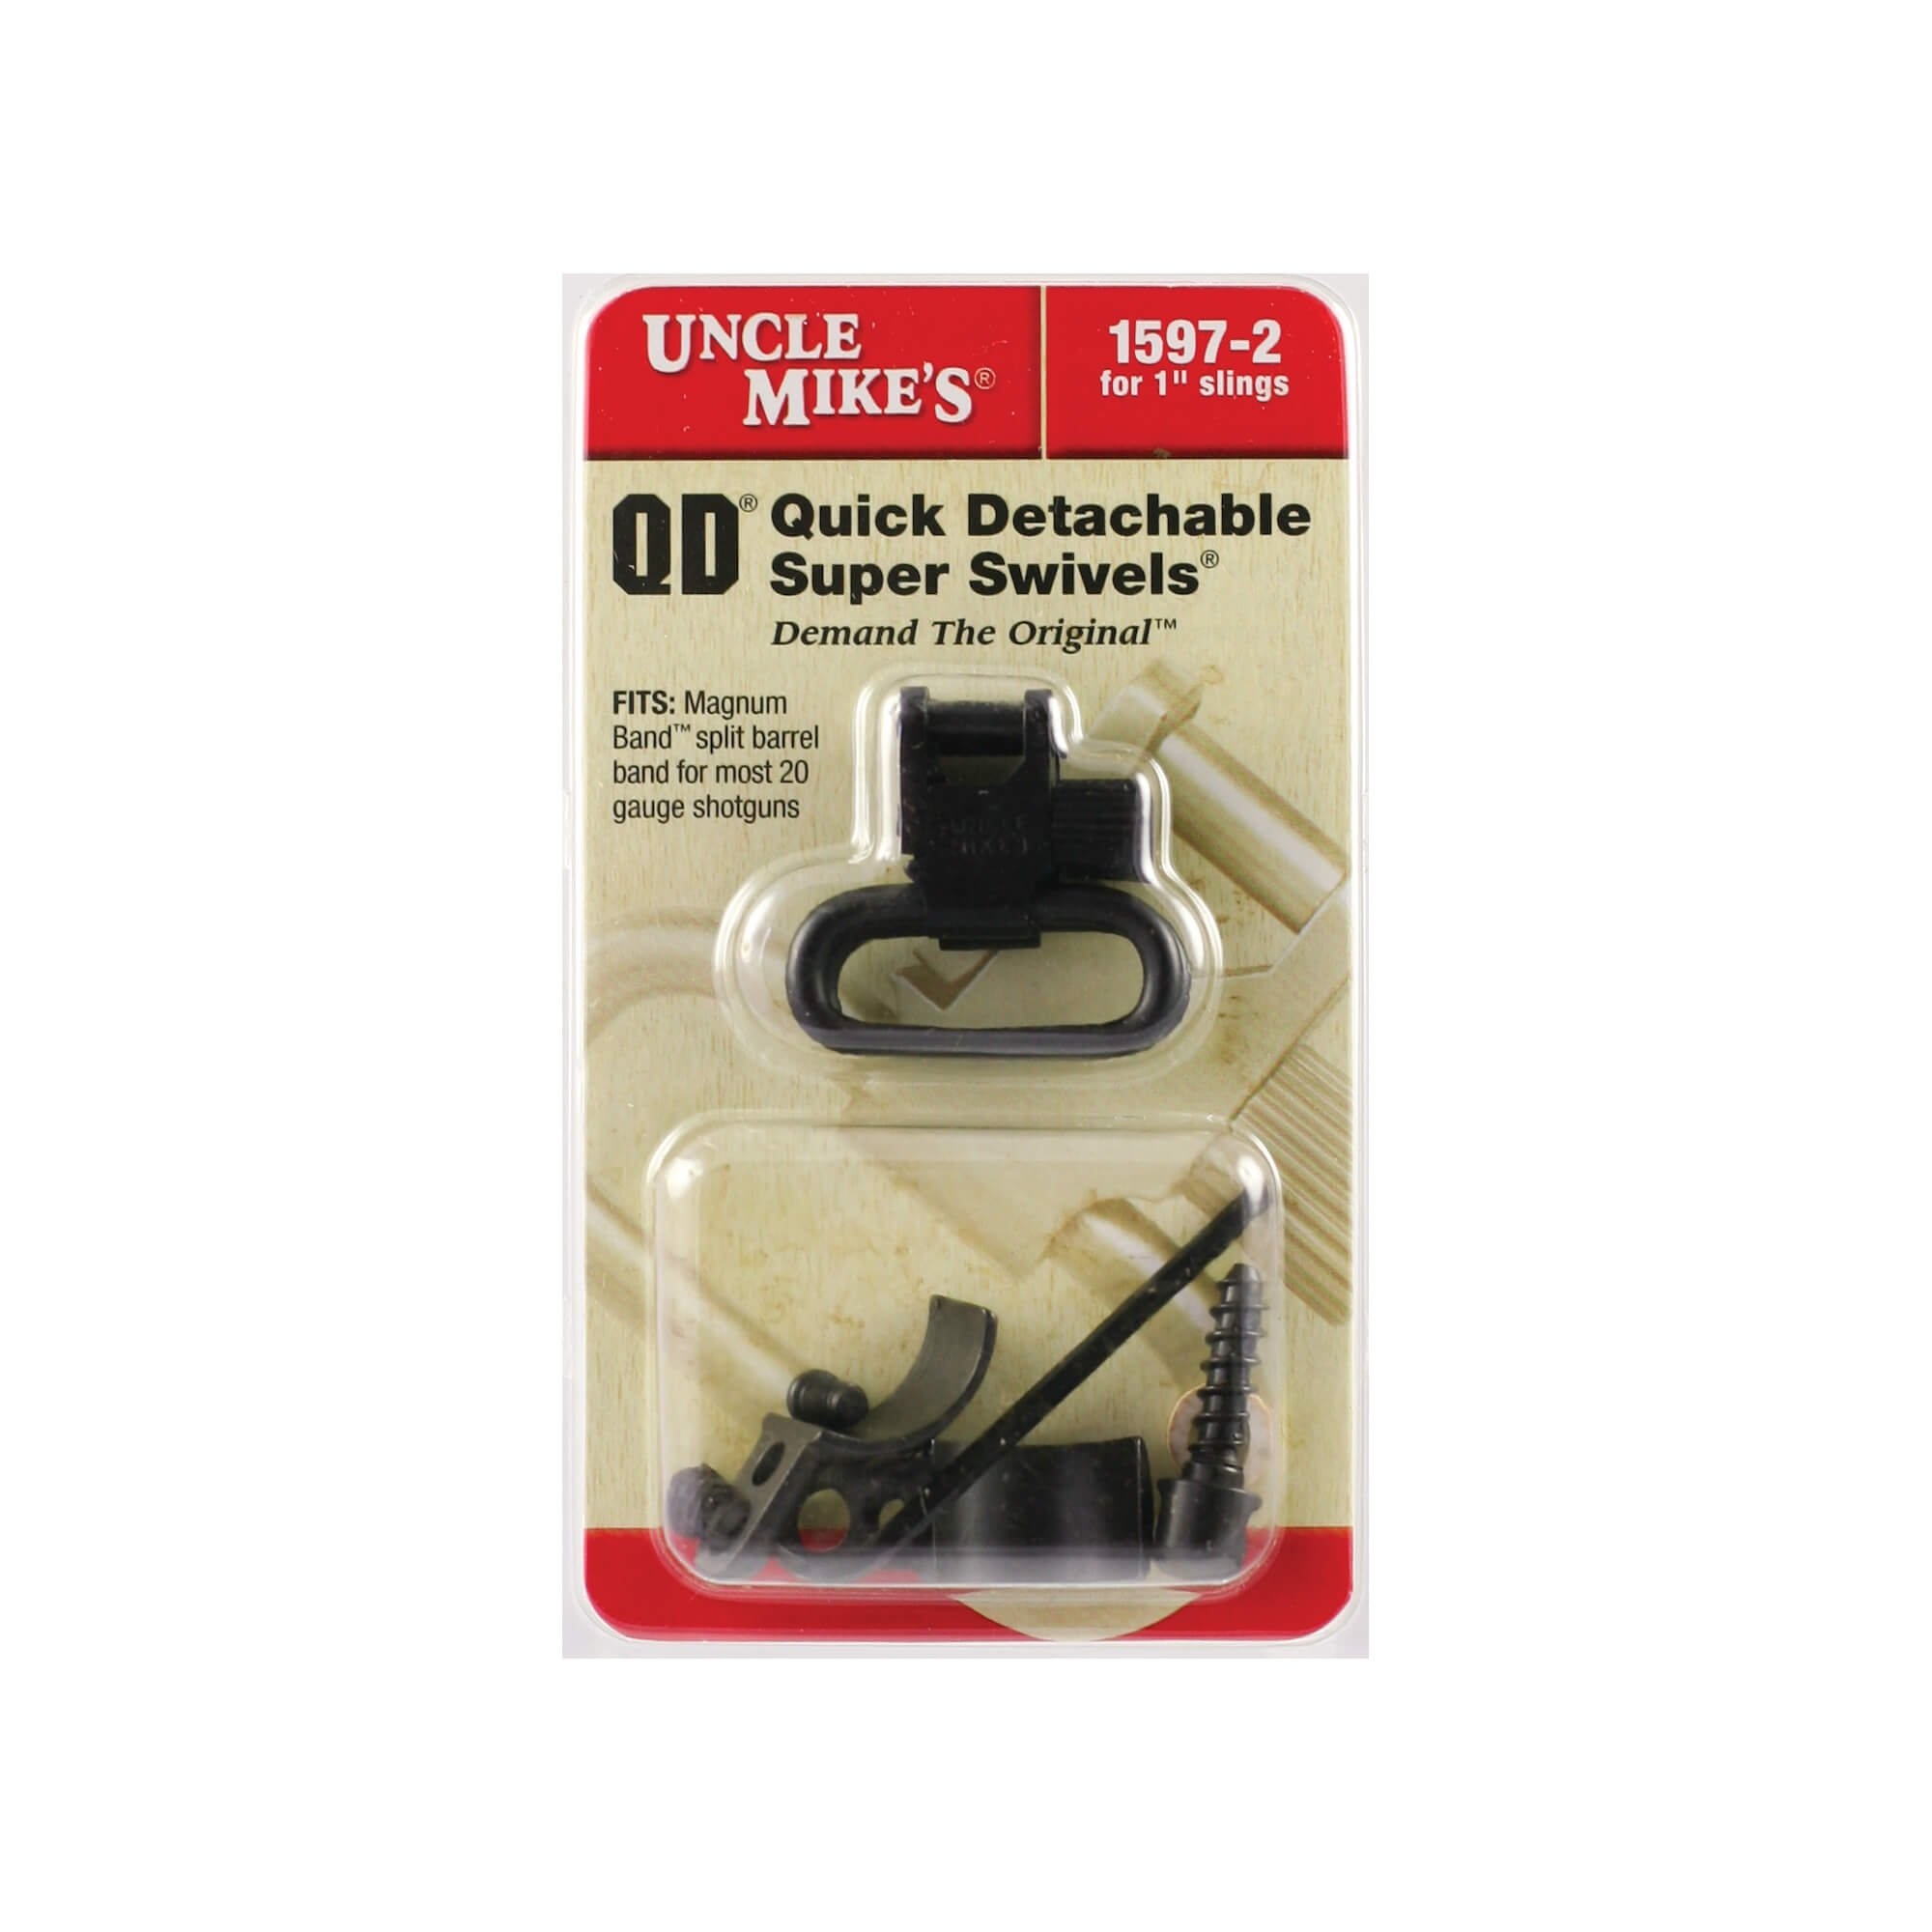 Uncle Mike's Quick Detachable Magnum Band Sling Swivels for Single and Over/Unders.700-.750-Inch Diameter (Blued, 1-Inch Loop)